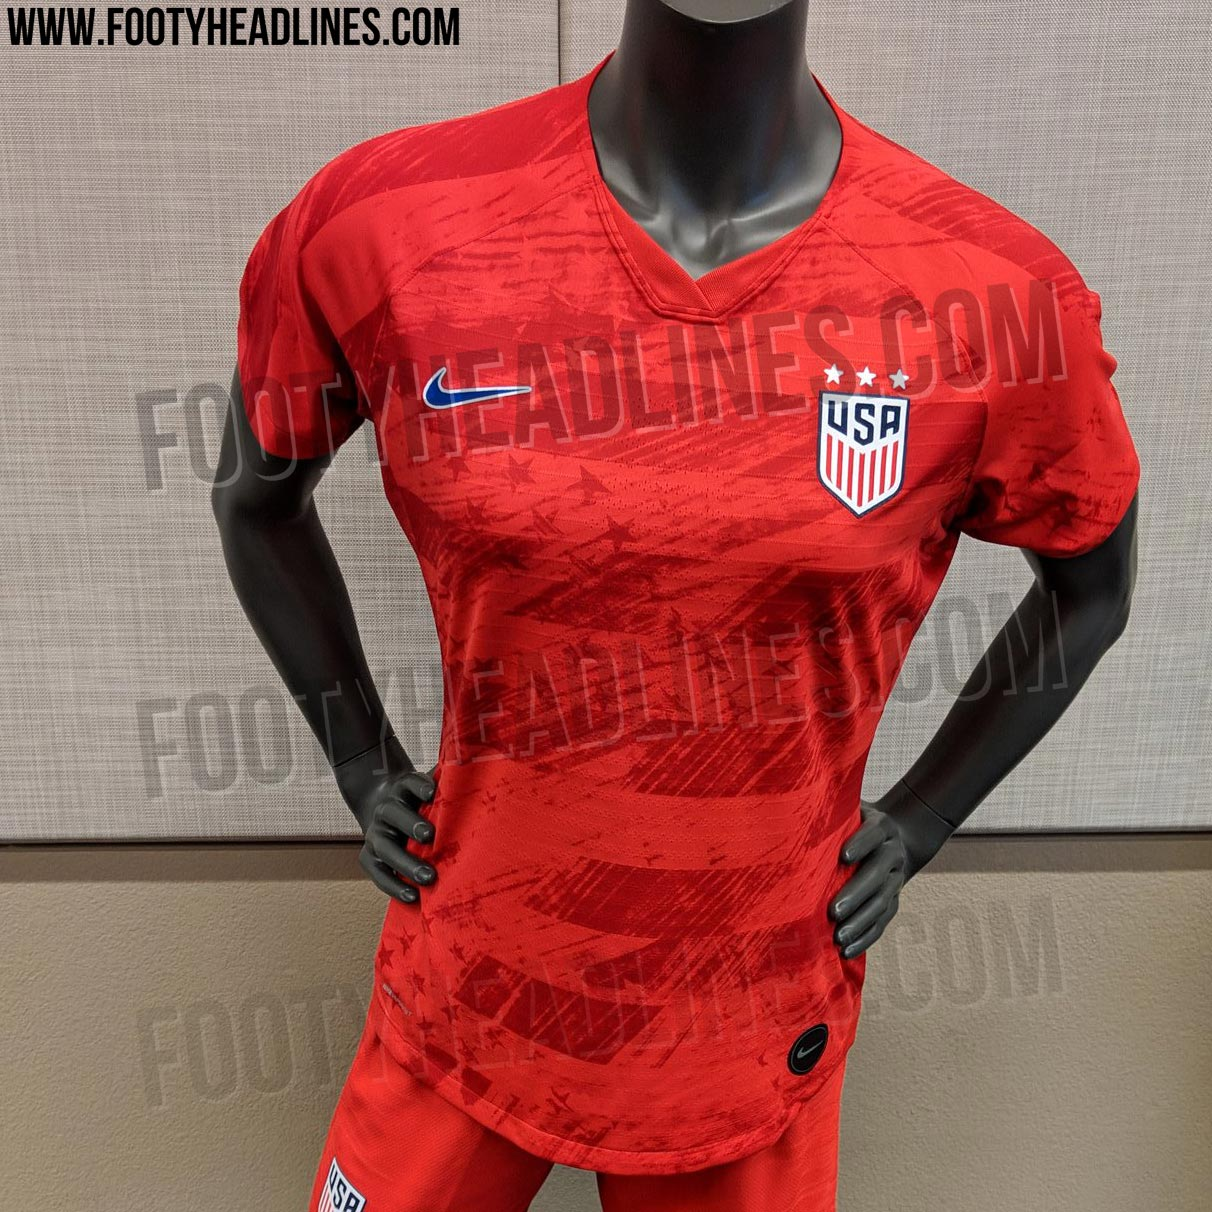 914c0848b12 The Nike USA 2019 Women s World Cup away kit is red with a unique stars and  stripes graphic design on the front. The Nike USA 2019 FIFA Women s World  Cup ...